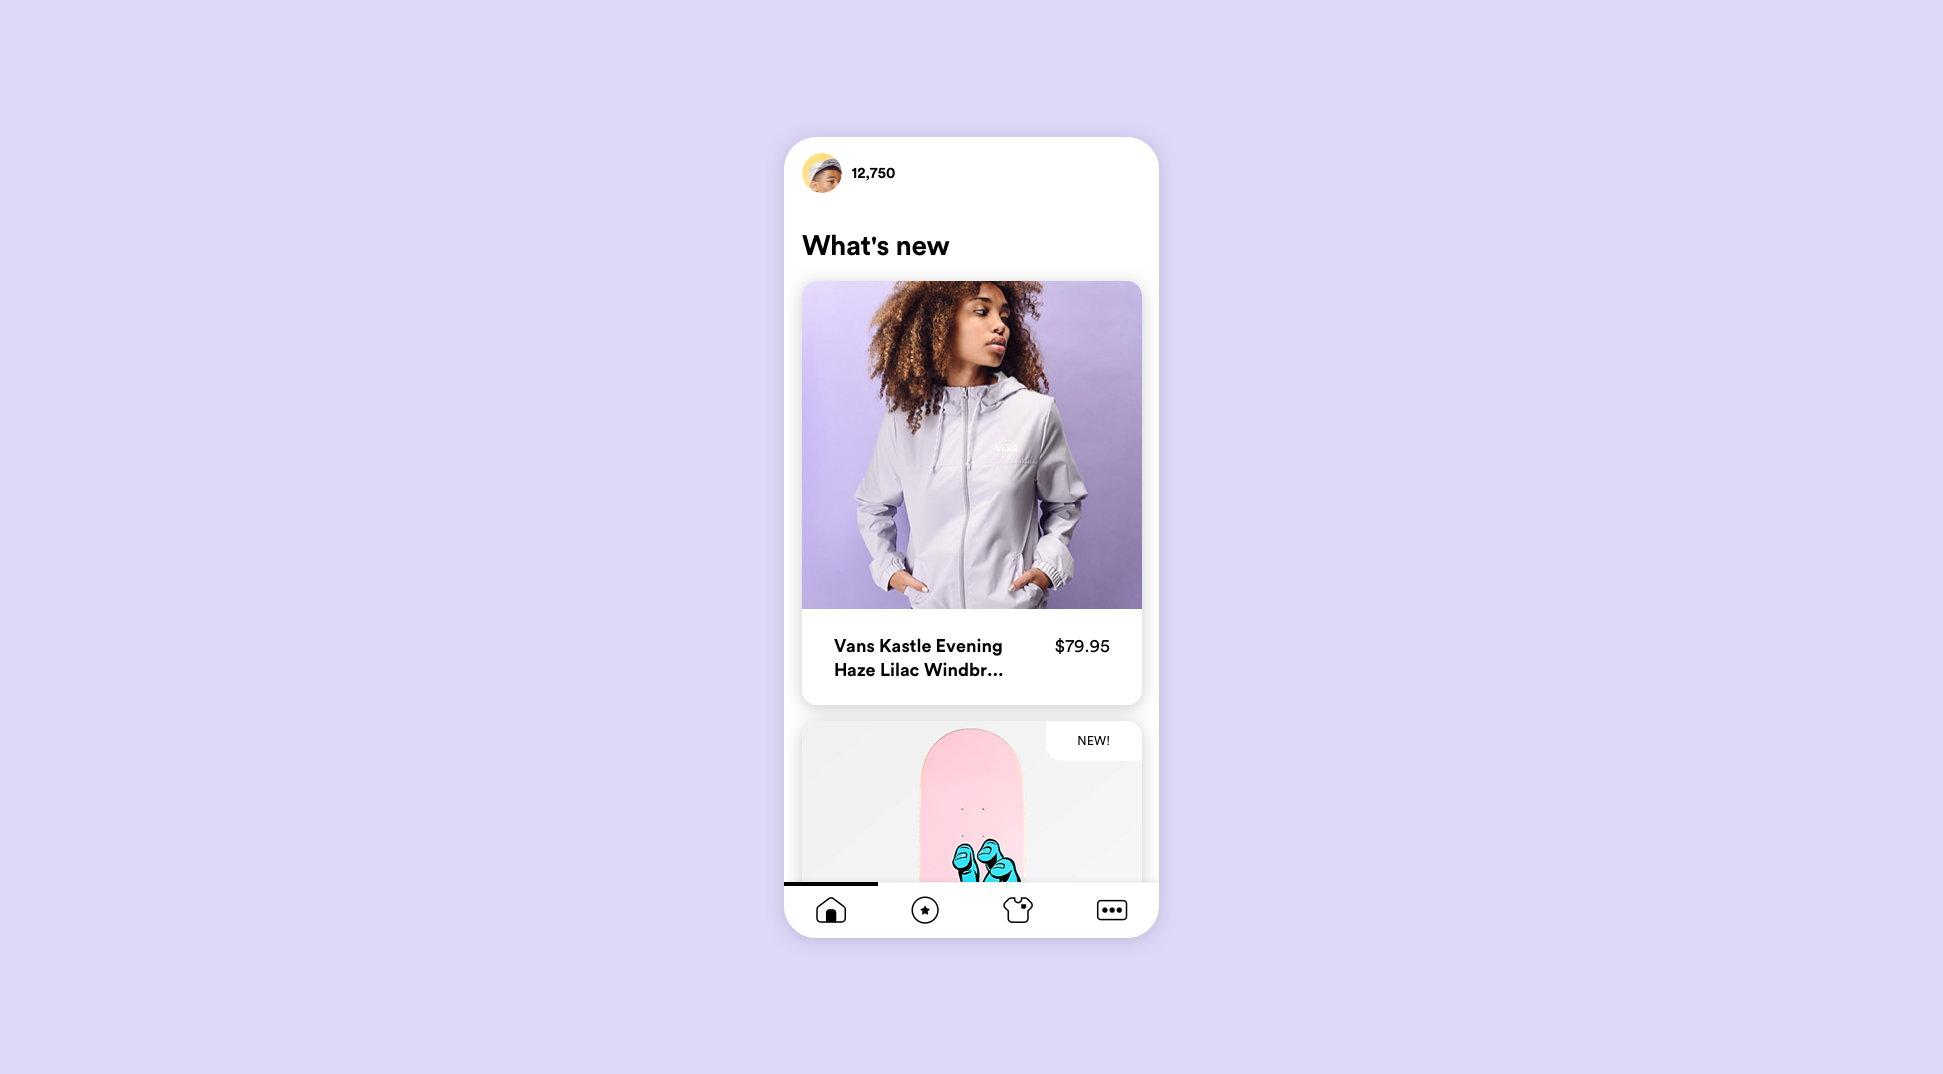 A pastel purple background featuring a minimalist phone. On the phone is a feed of cards containing various images.